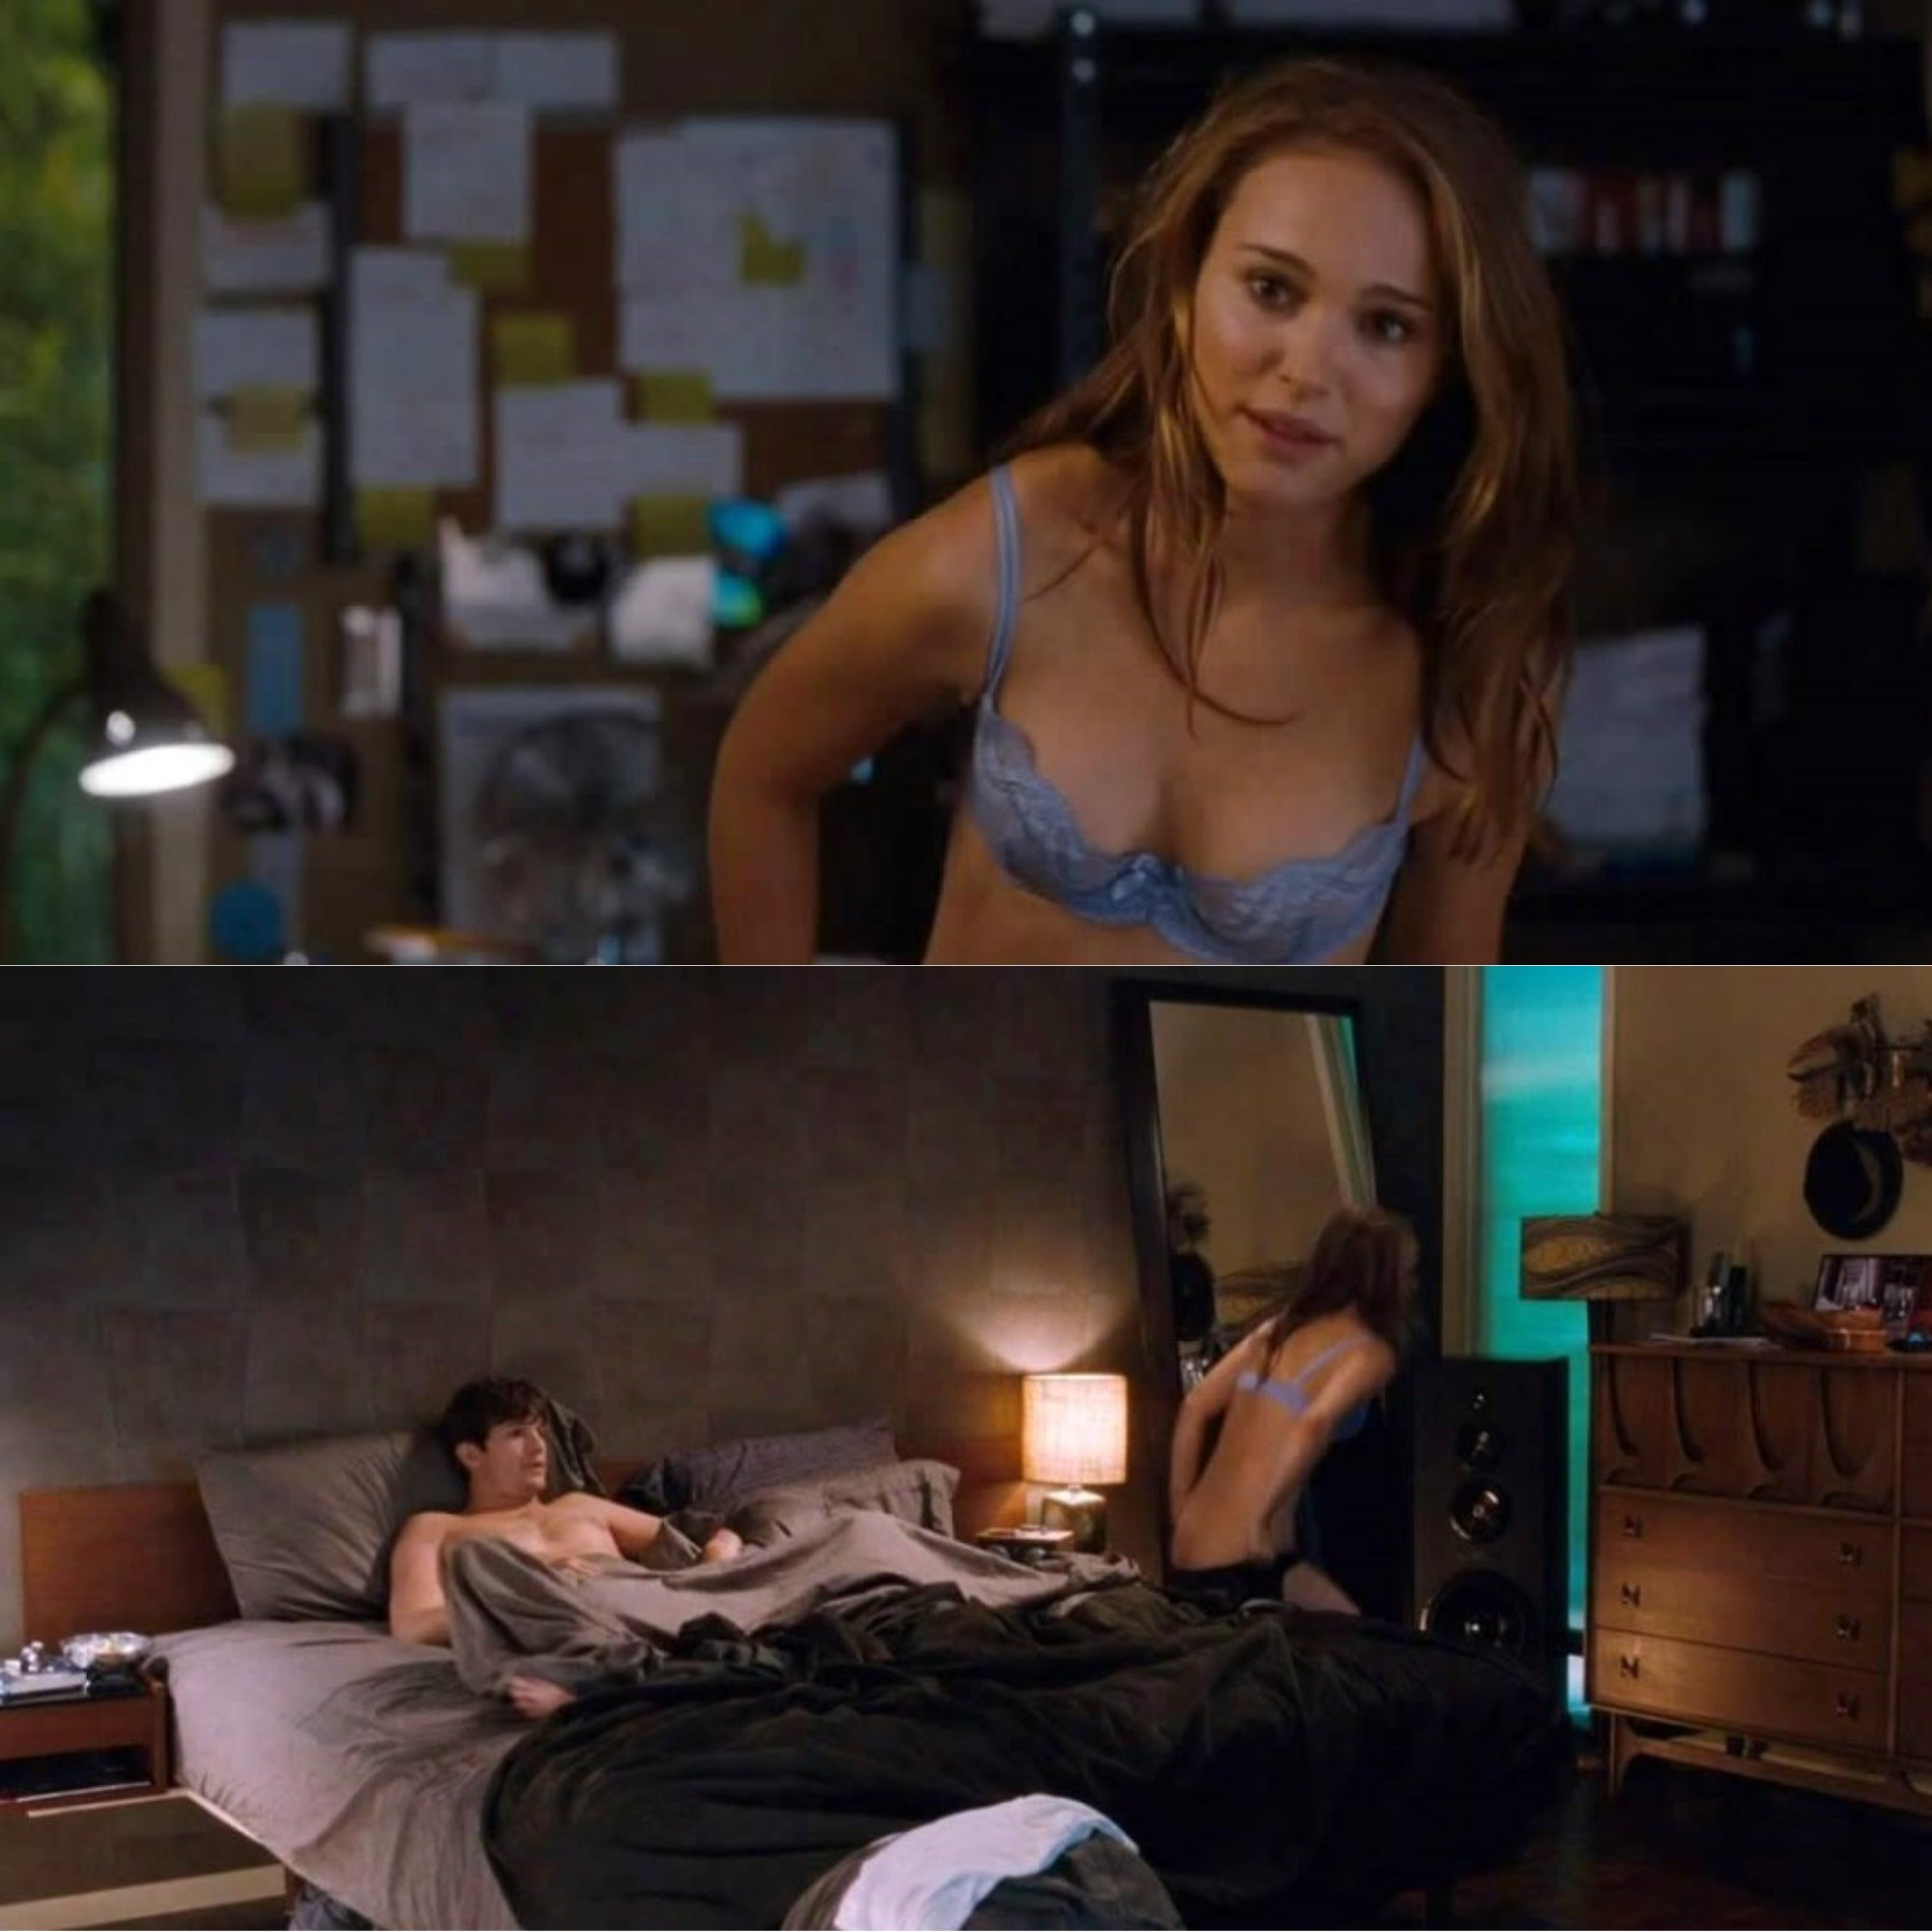 No strings attached scene